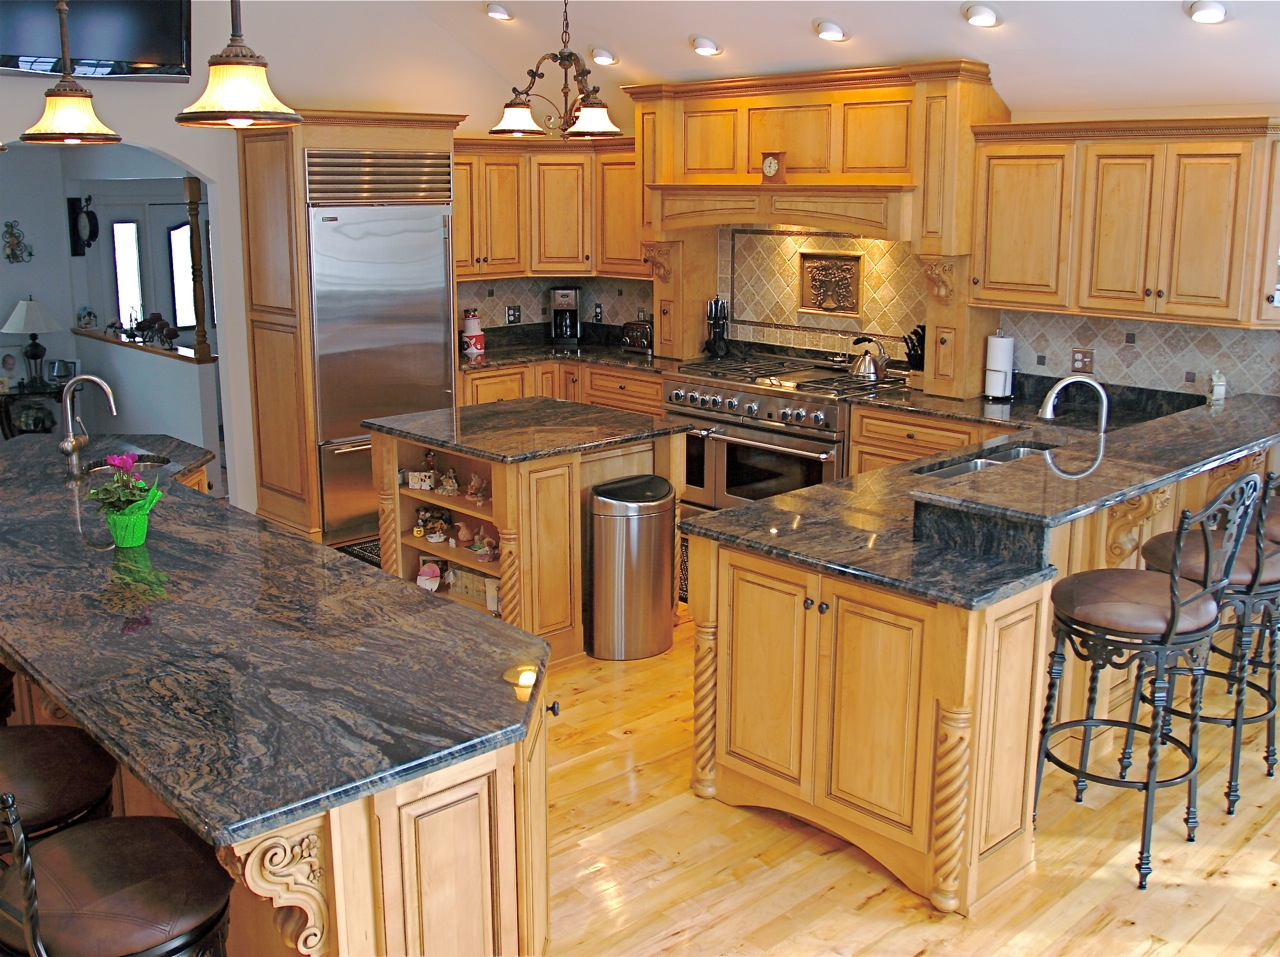 type kitchen best kitchens countertop countertops image of antique for types